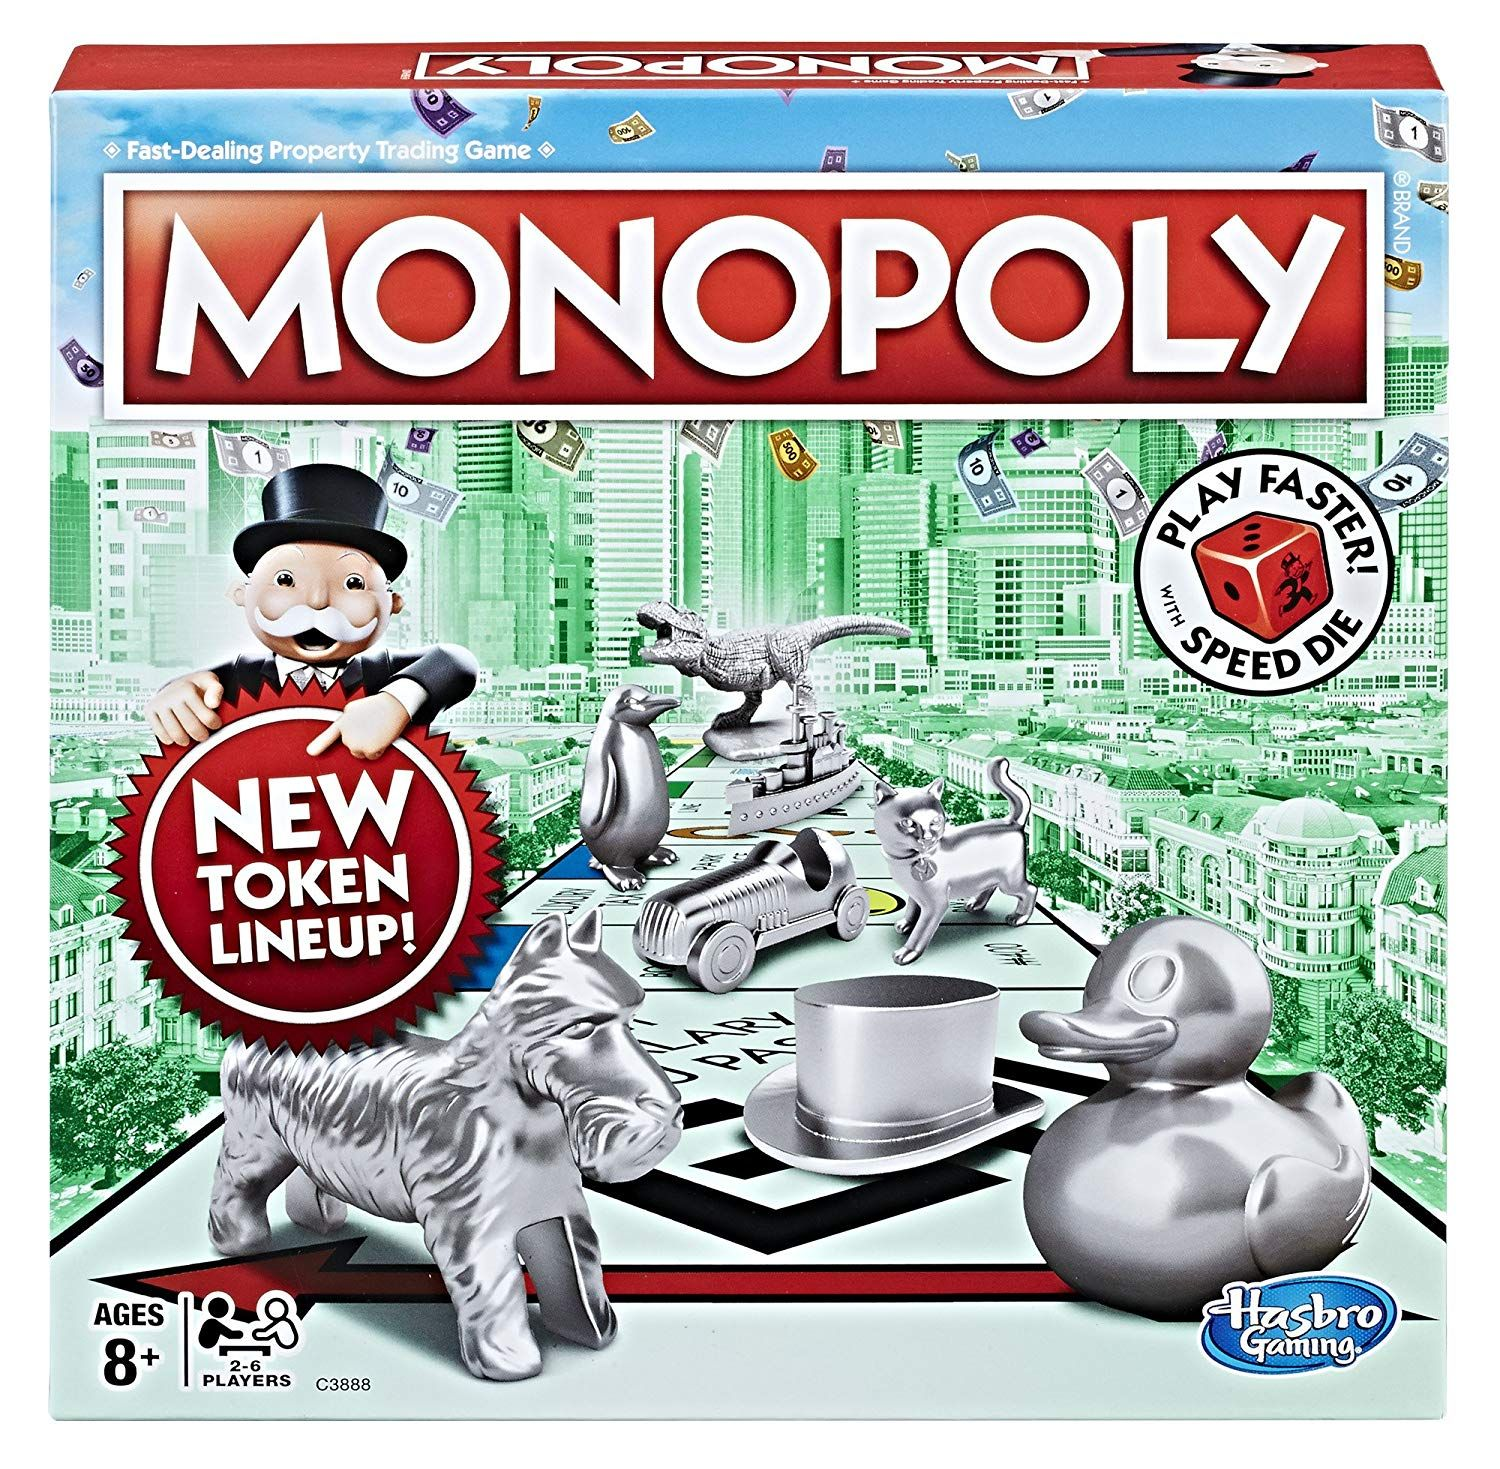 Monopoly Speed Die Edition Monopoly, Games, Board games